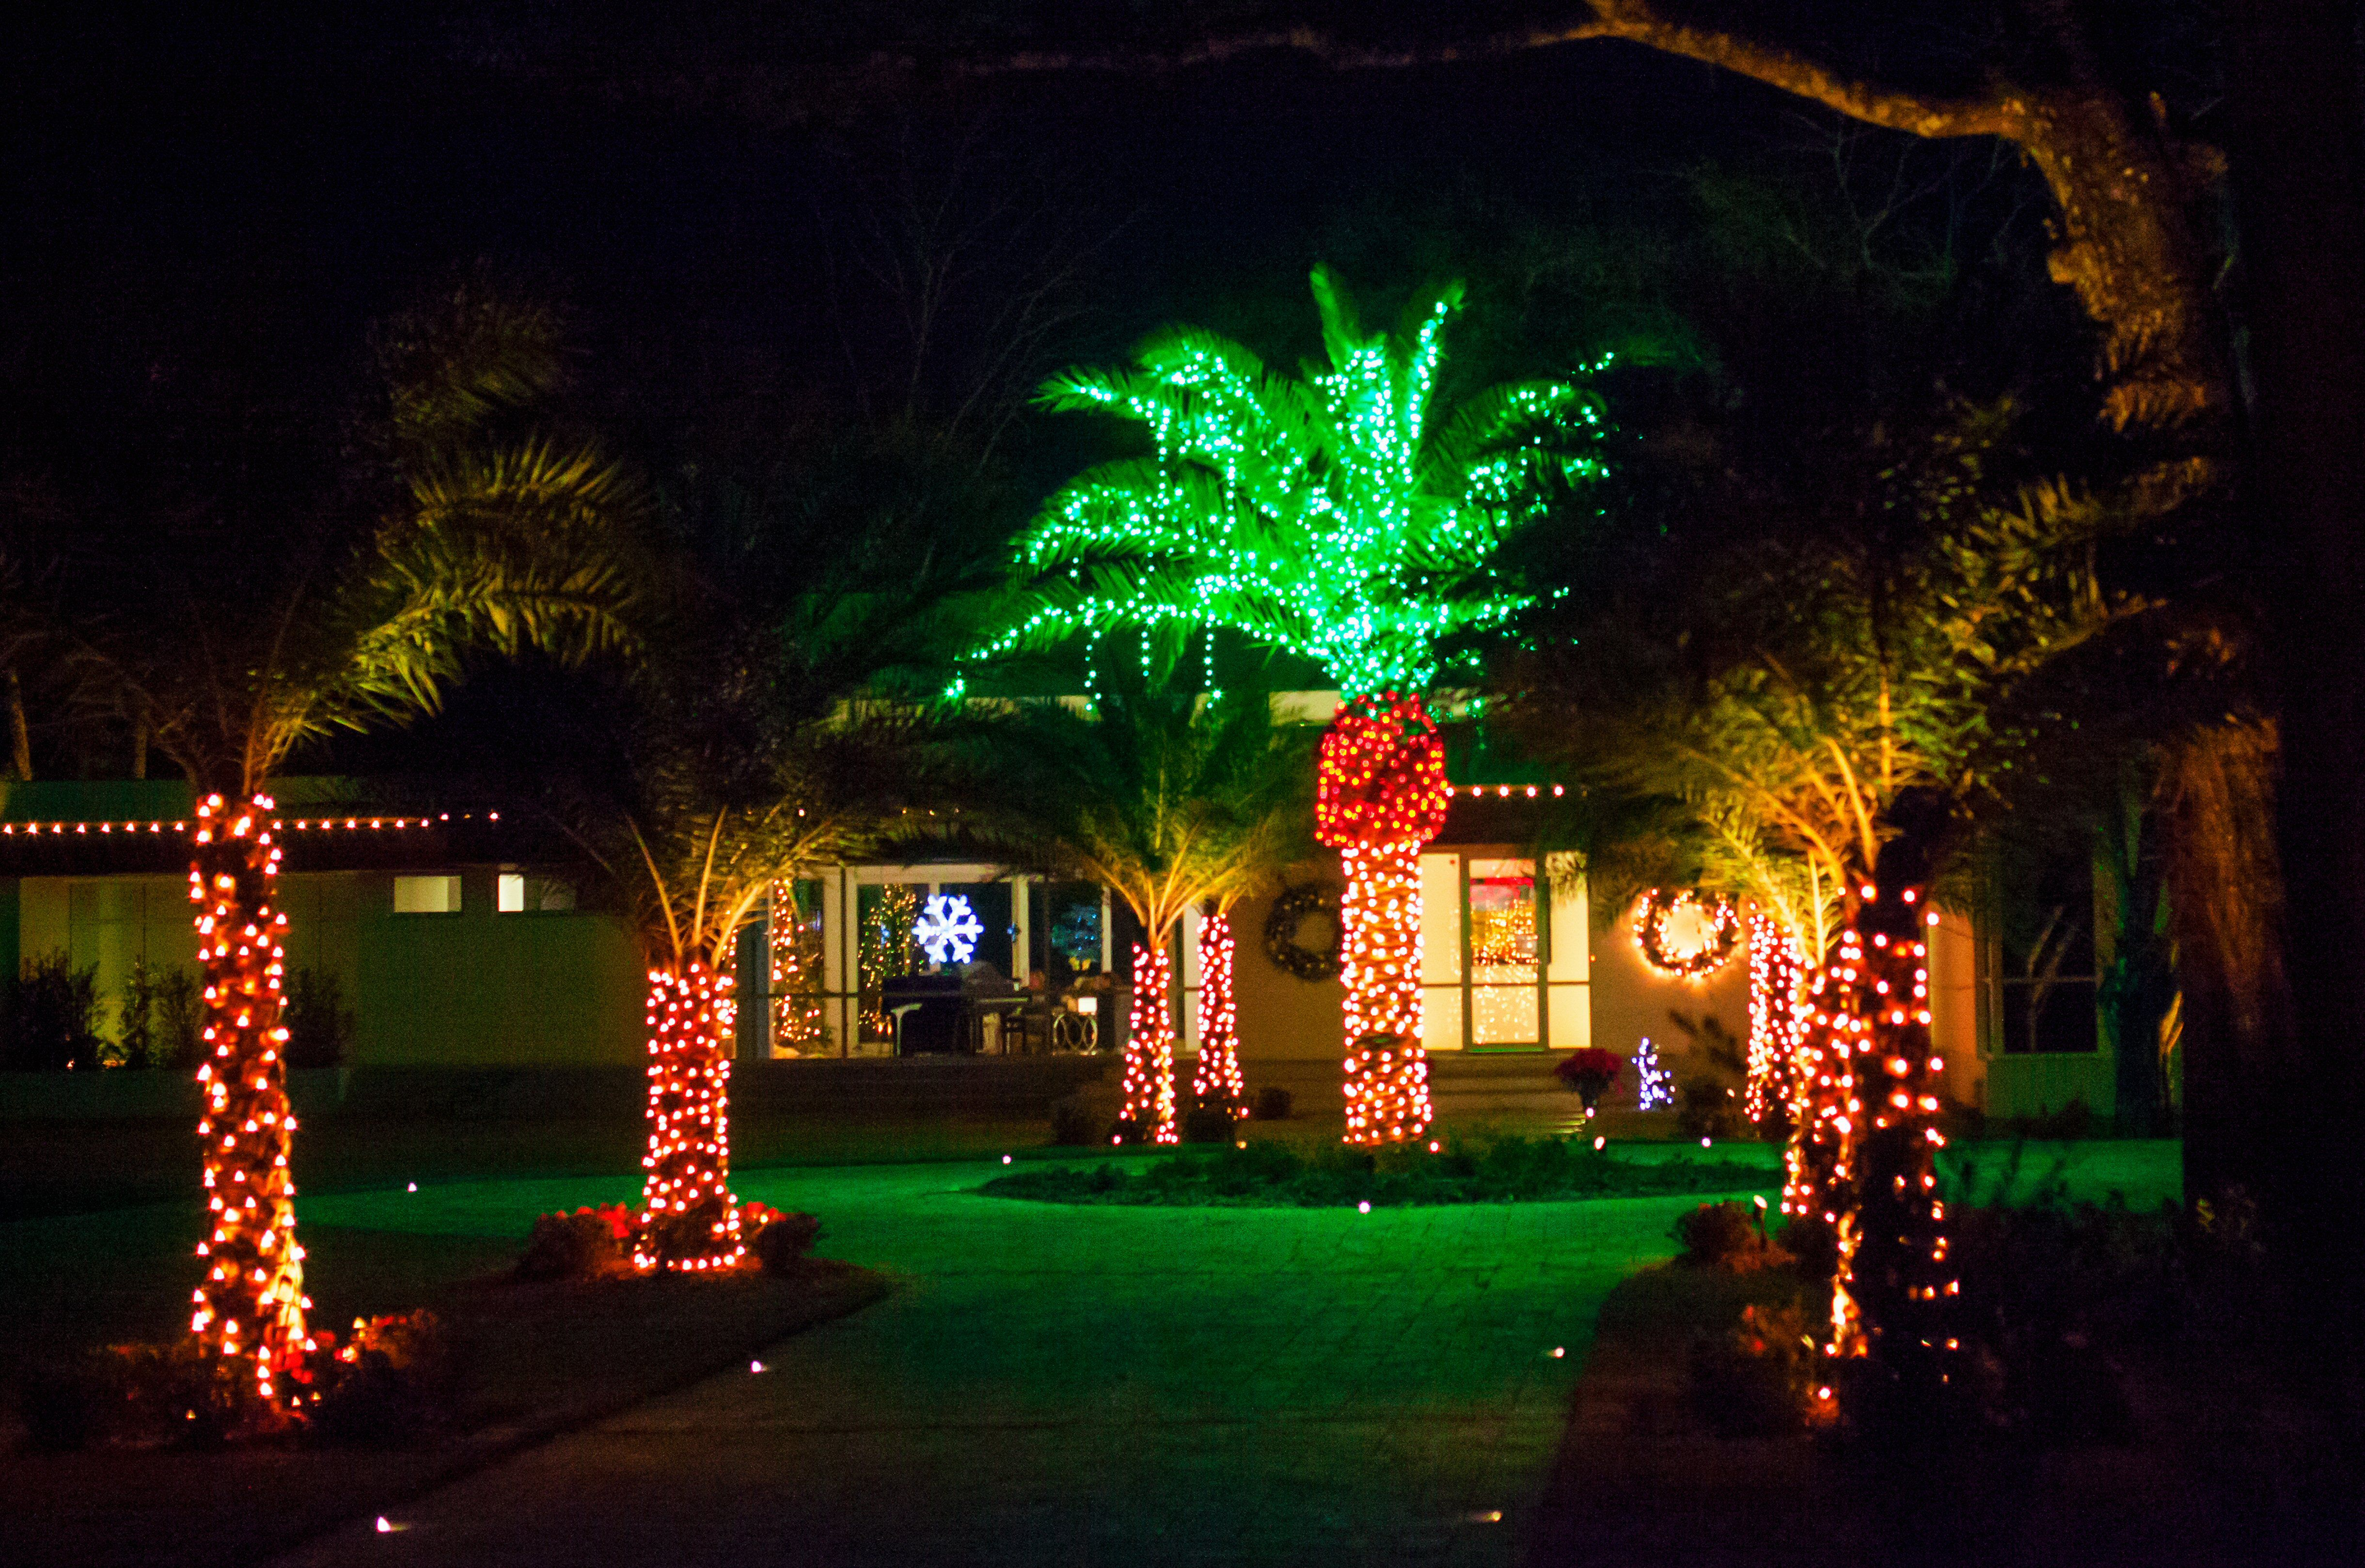 holiday lighted trees, including green palms, in the front of a Florida house